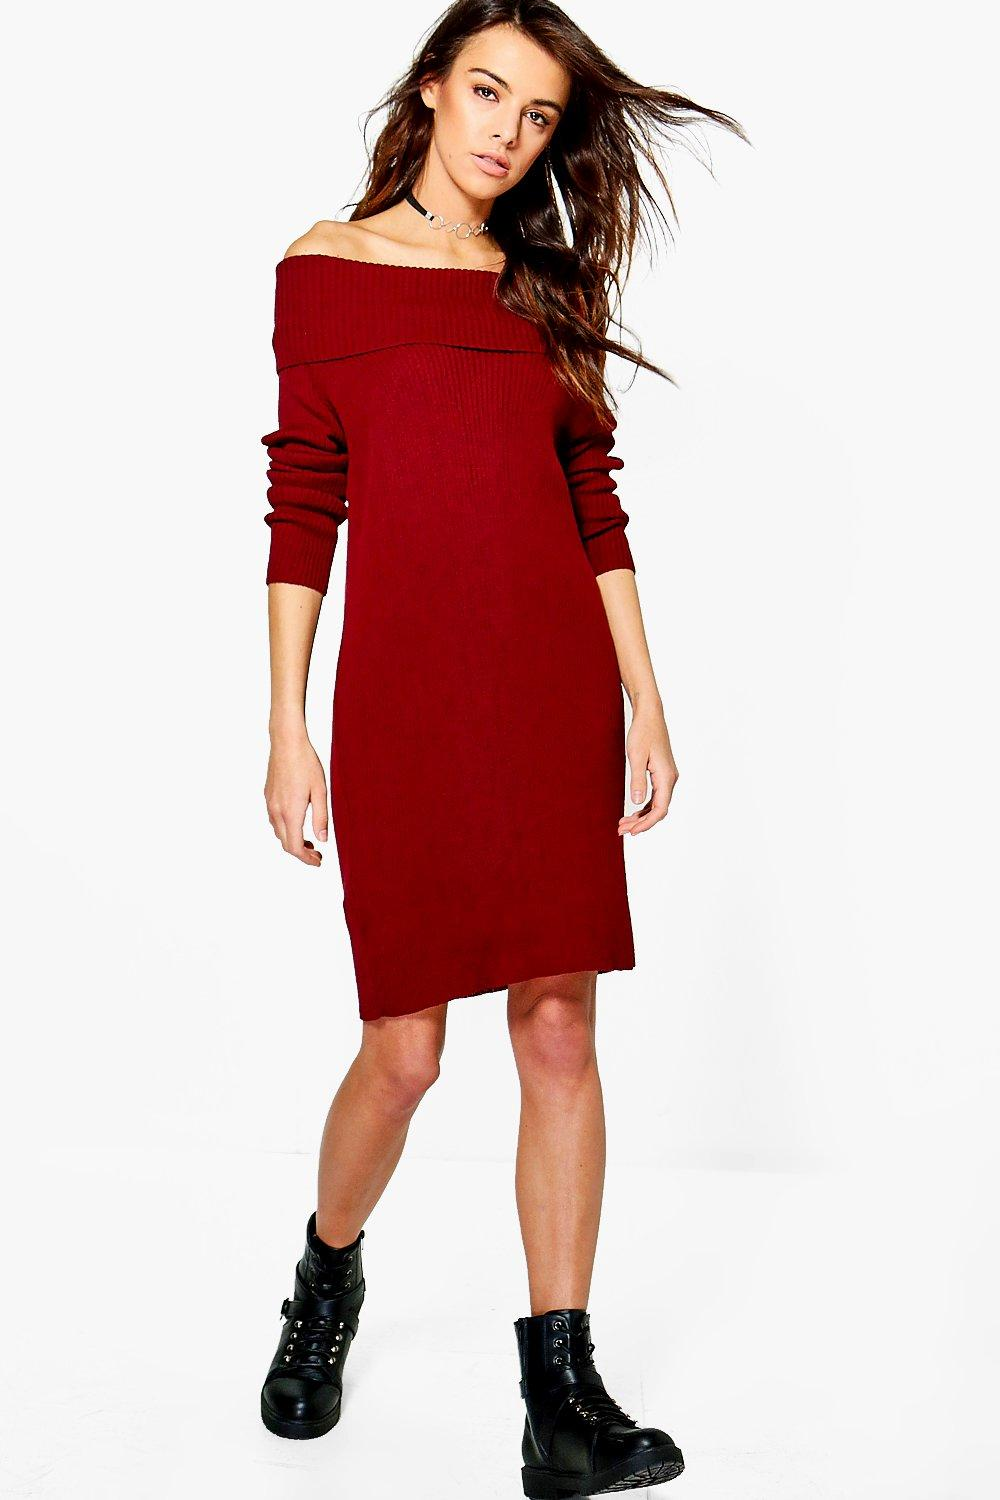 Elizabeth Rib Knit Bardot Jumper Dress